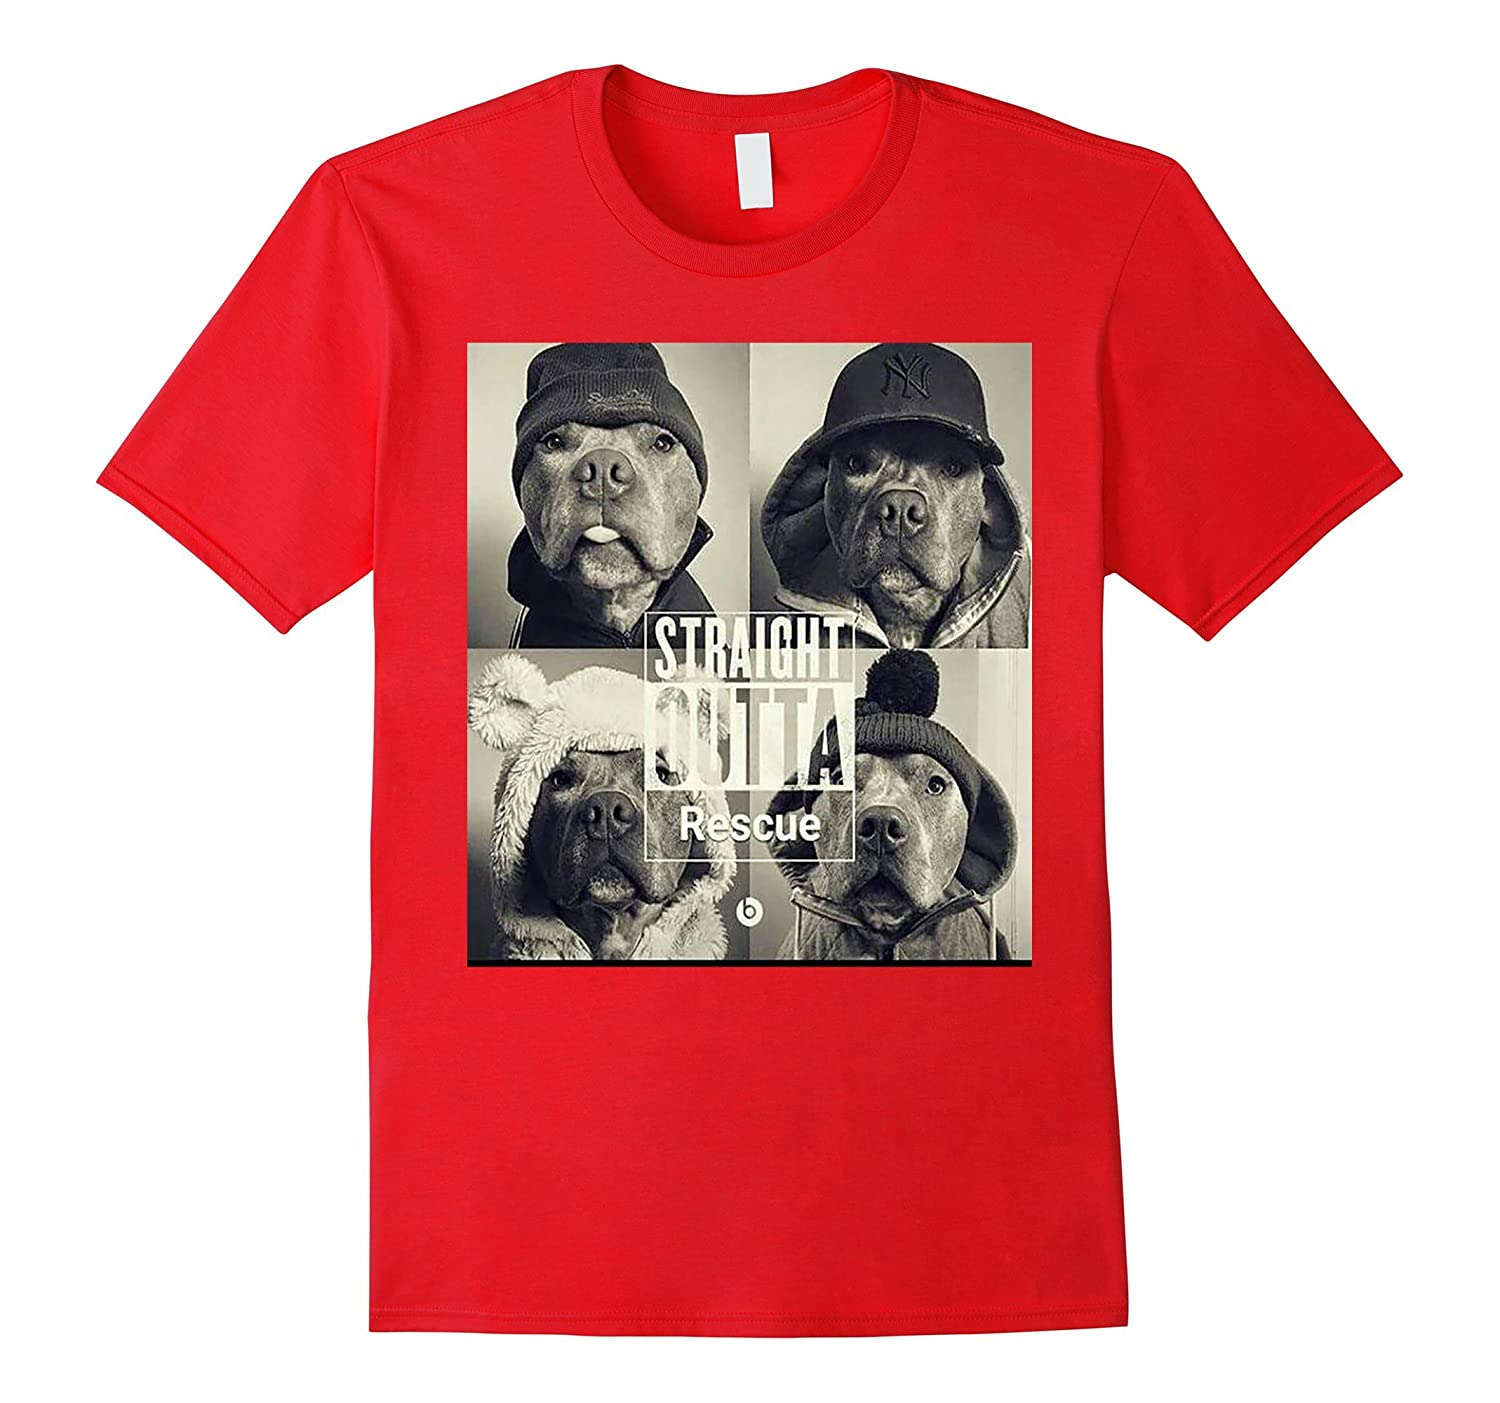 Straight Outta Rescue T-Shirt - Pit Bull Dog Shirt-FL